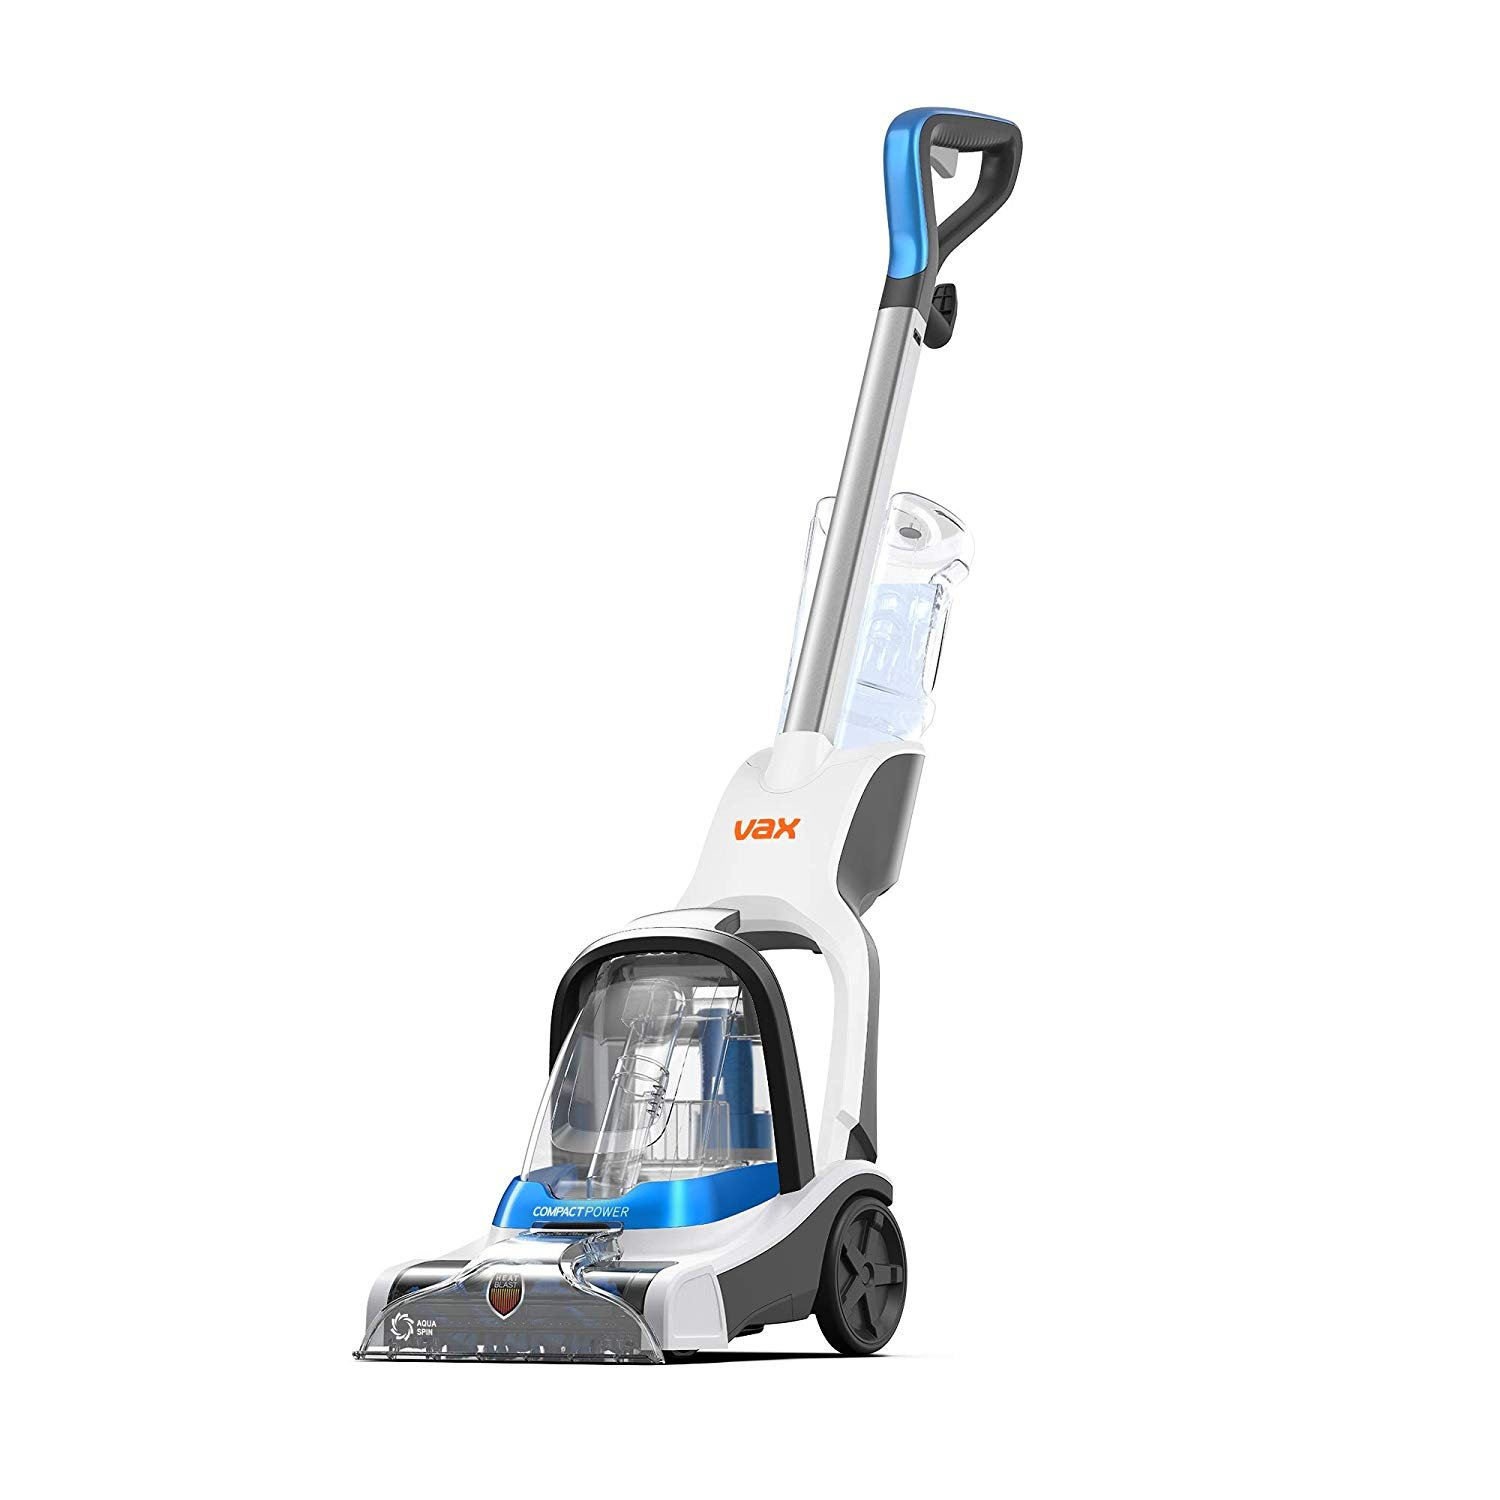 Vax Compact Power Carpet Cleaner Review